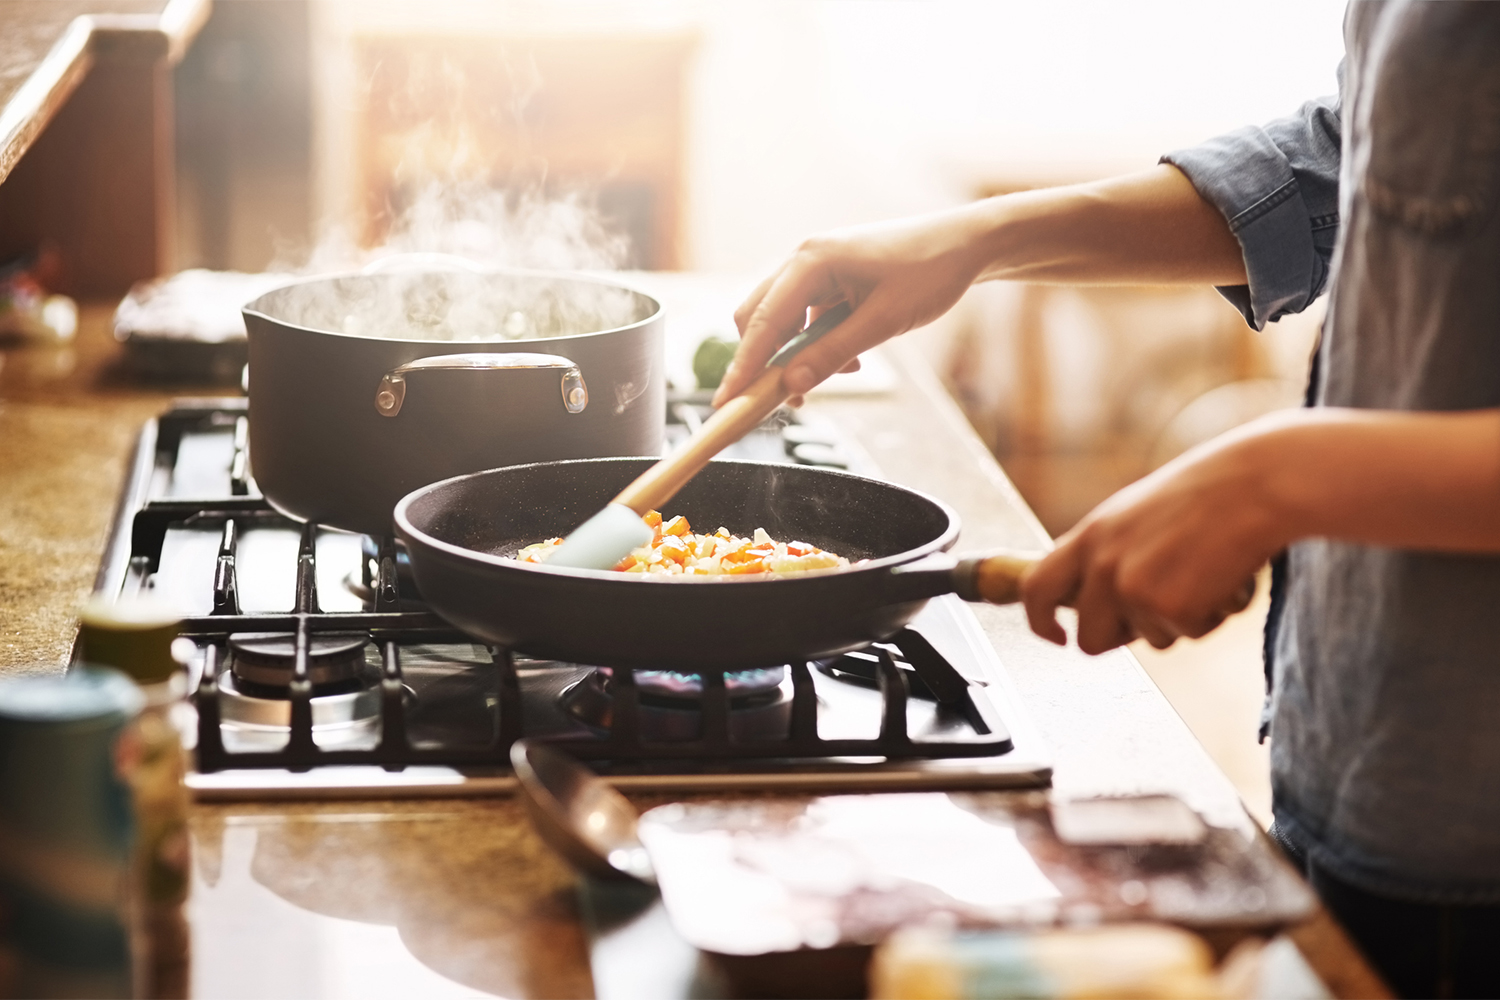 Cook a Meal for Friends